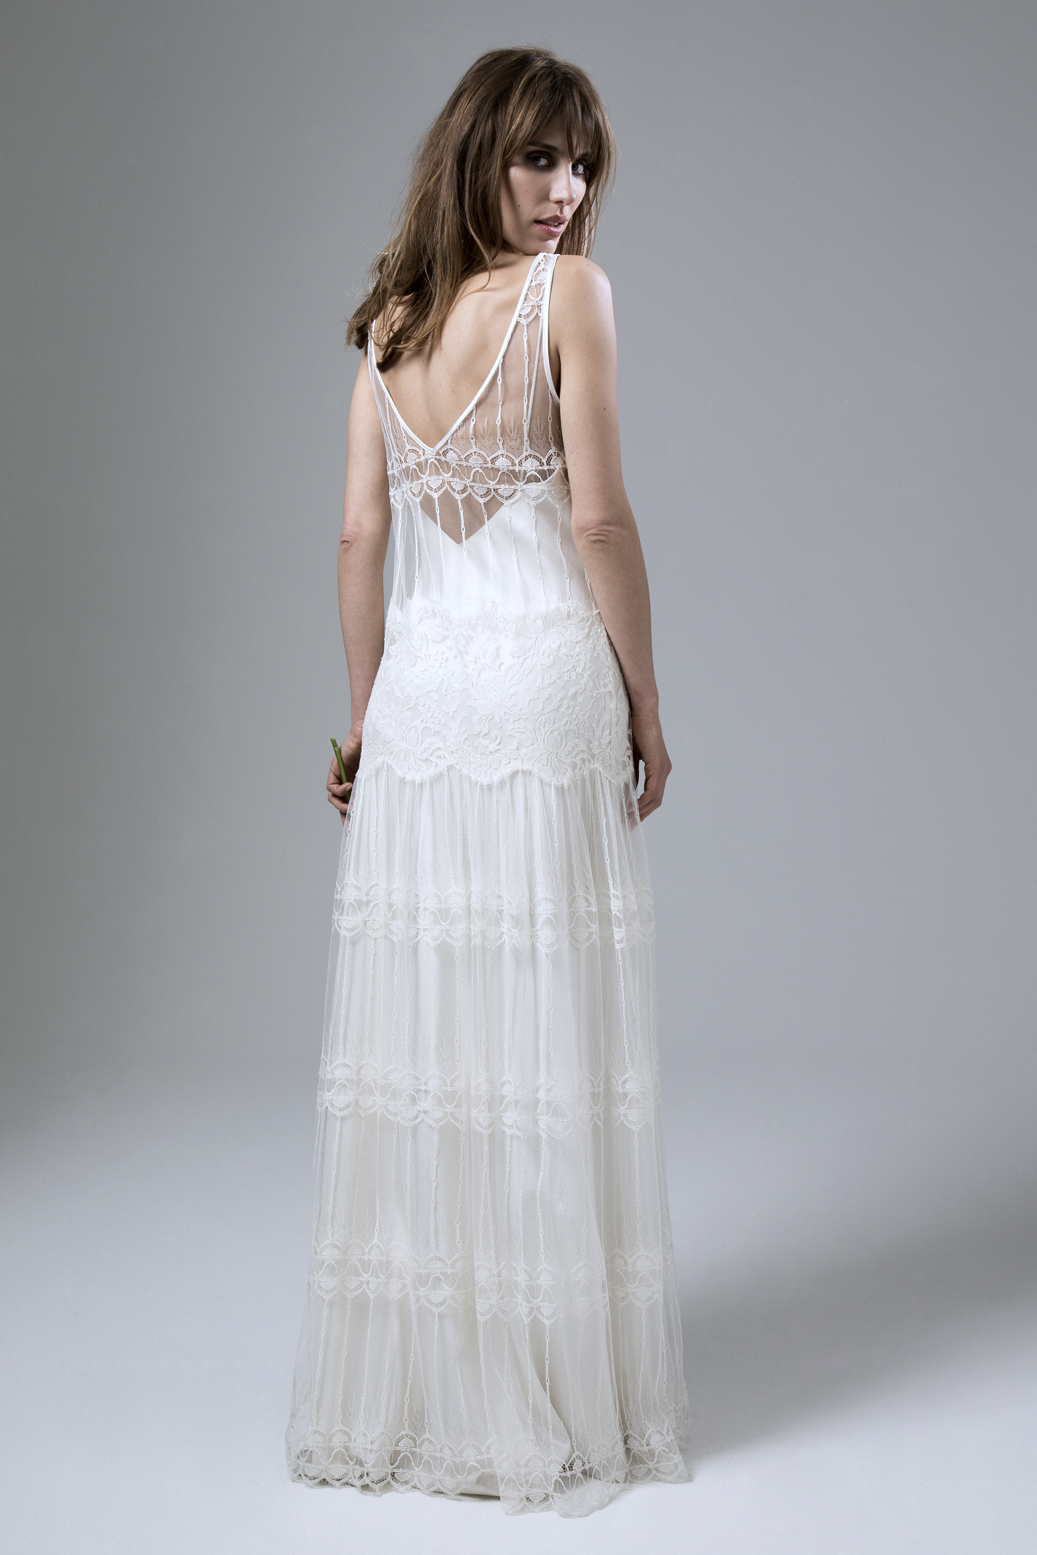 Marilyne V neck French Lace and Back view of the Chantilly lace wedding dress by Halfpenny London